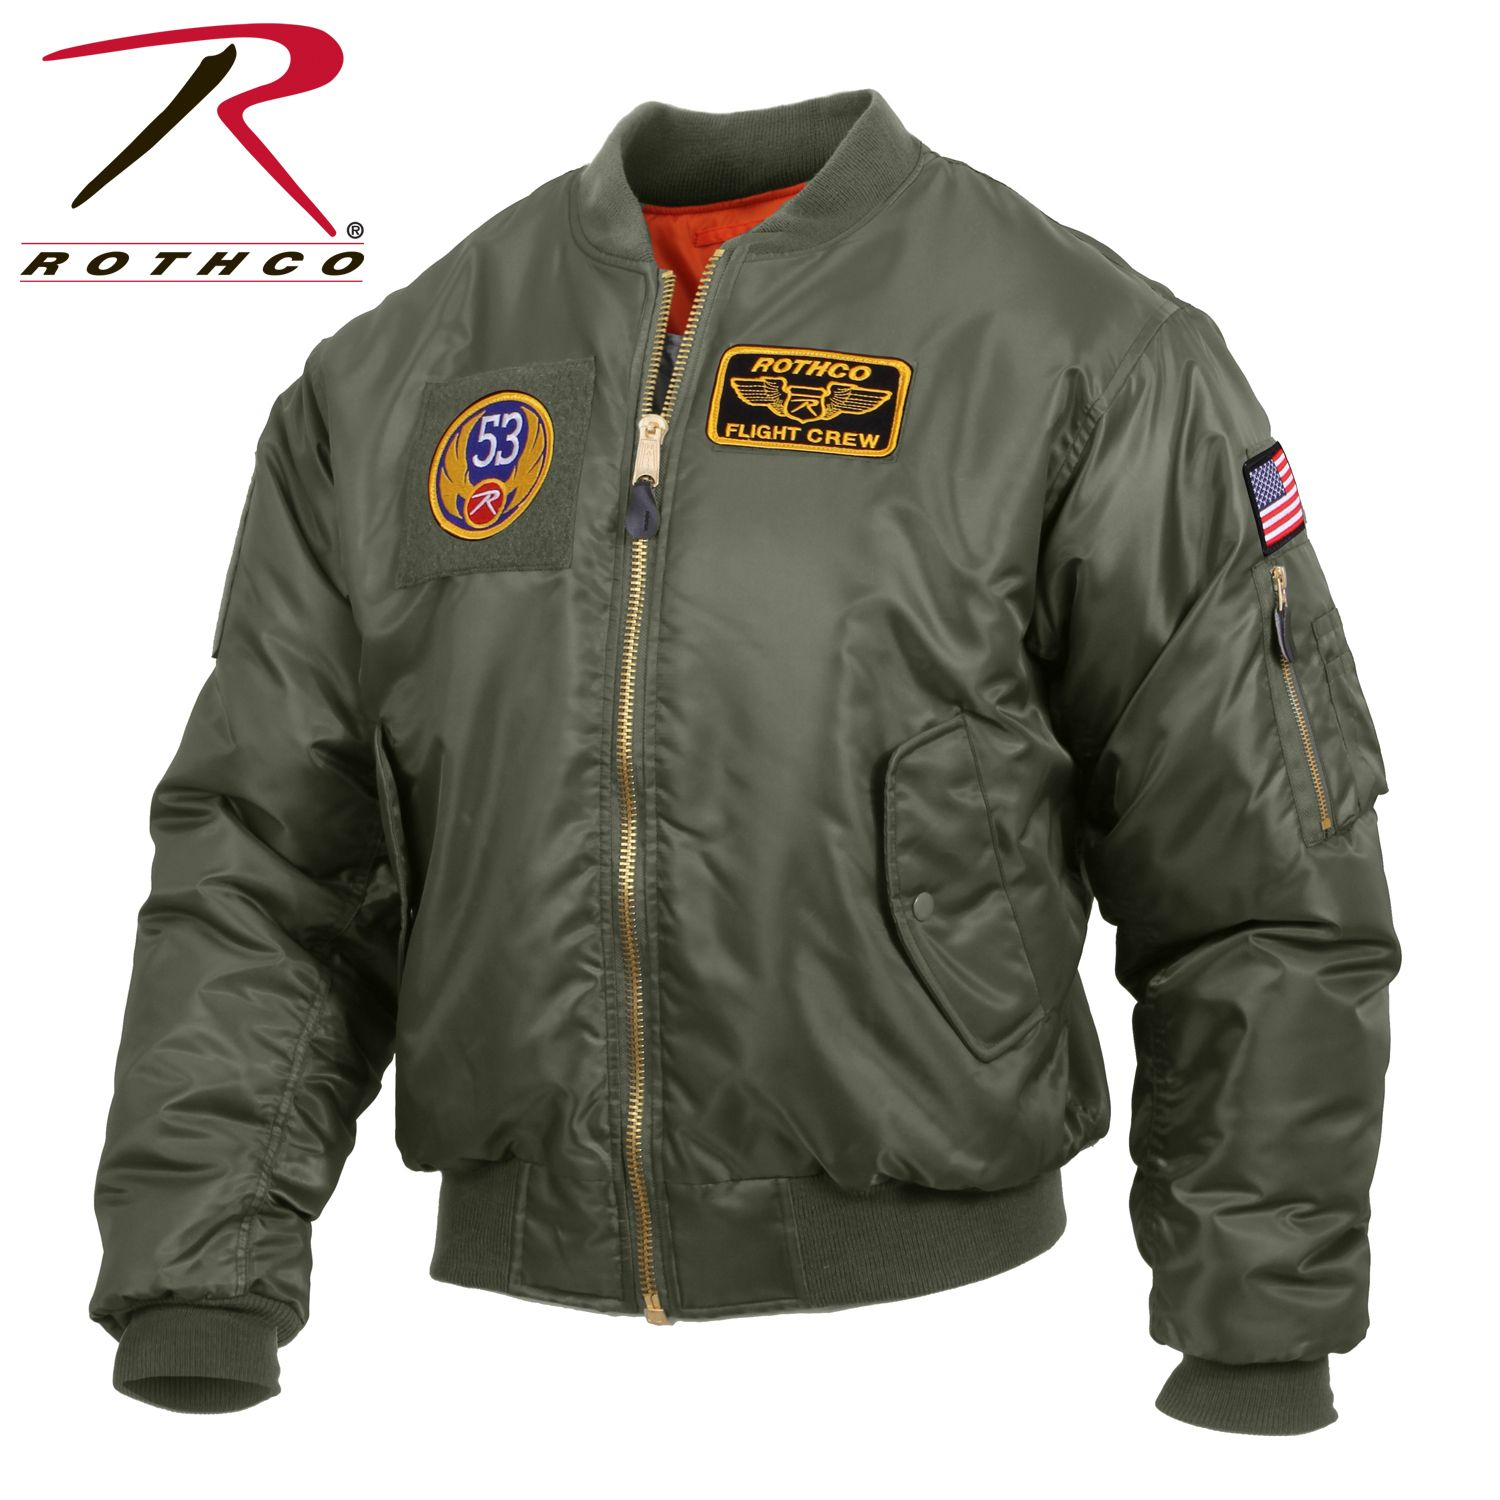 Rothco Ma 1 Flight Jacket With Patches Leather Flight Jacket Jackets Flight Jacket [ 1500 x 1500 Pixel ]